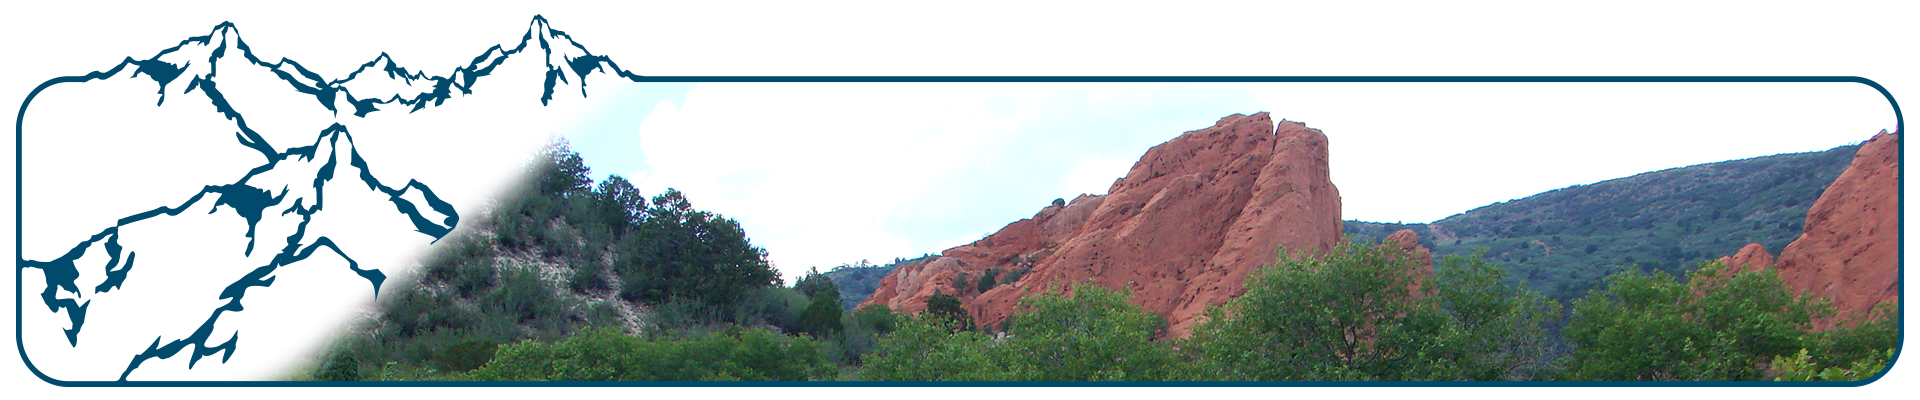 Visit Rock Ledge Ranch, right across the way from the Garden of the Gods in Colorado!